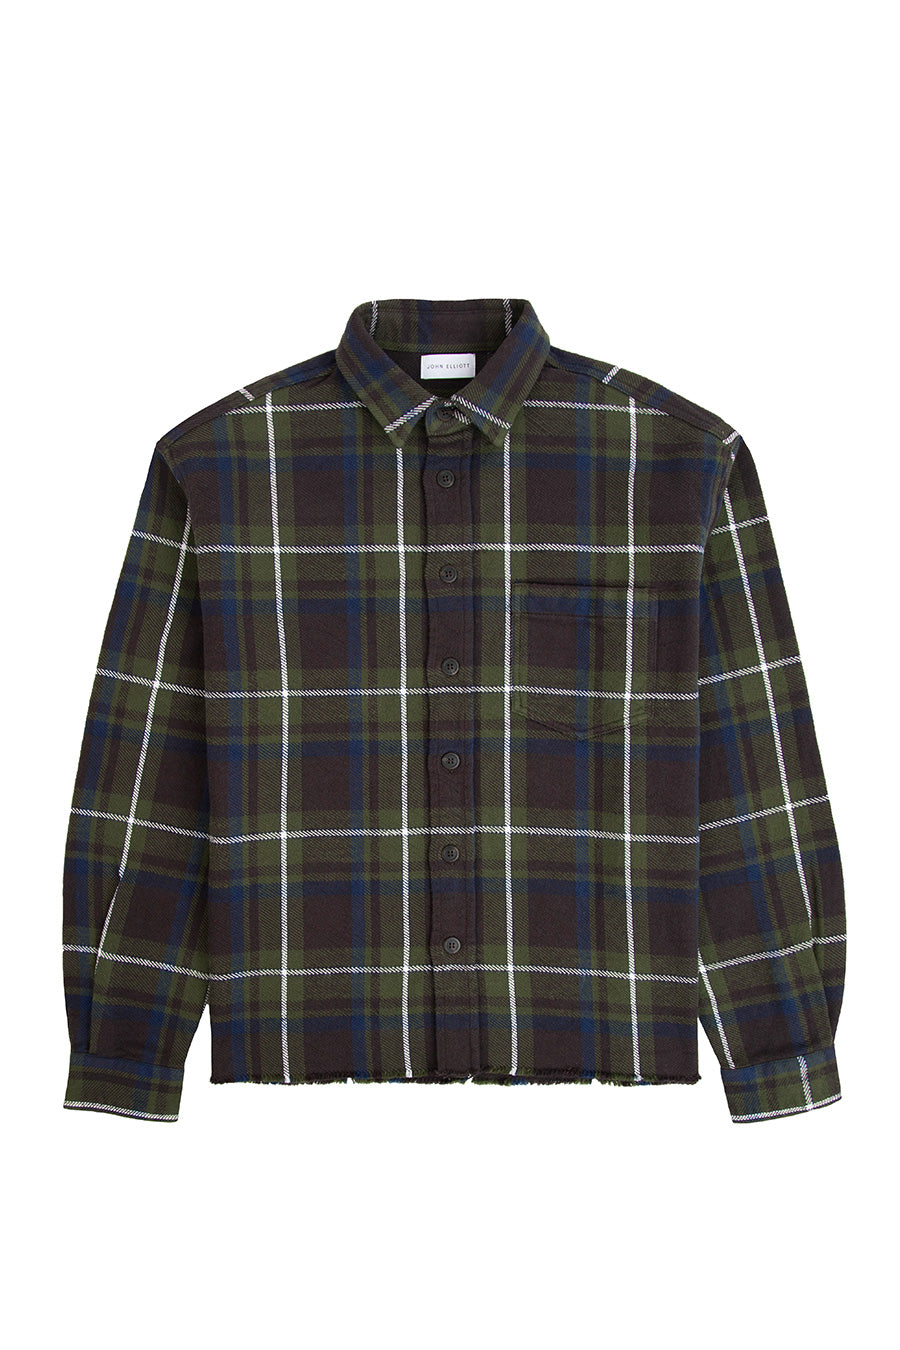 John Elliott - Dark Green Butte Plaid Hemi Oversized Shirt | 1032 SPACE